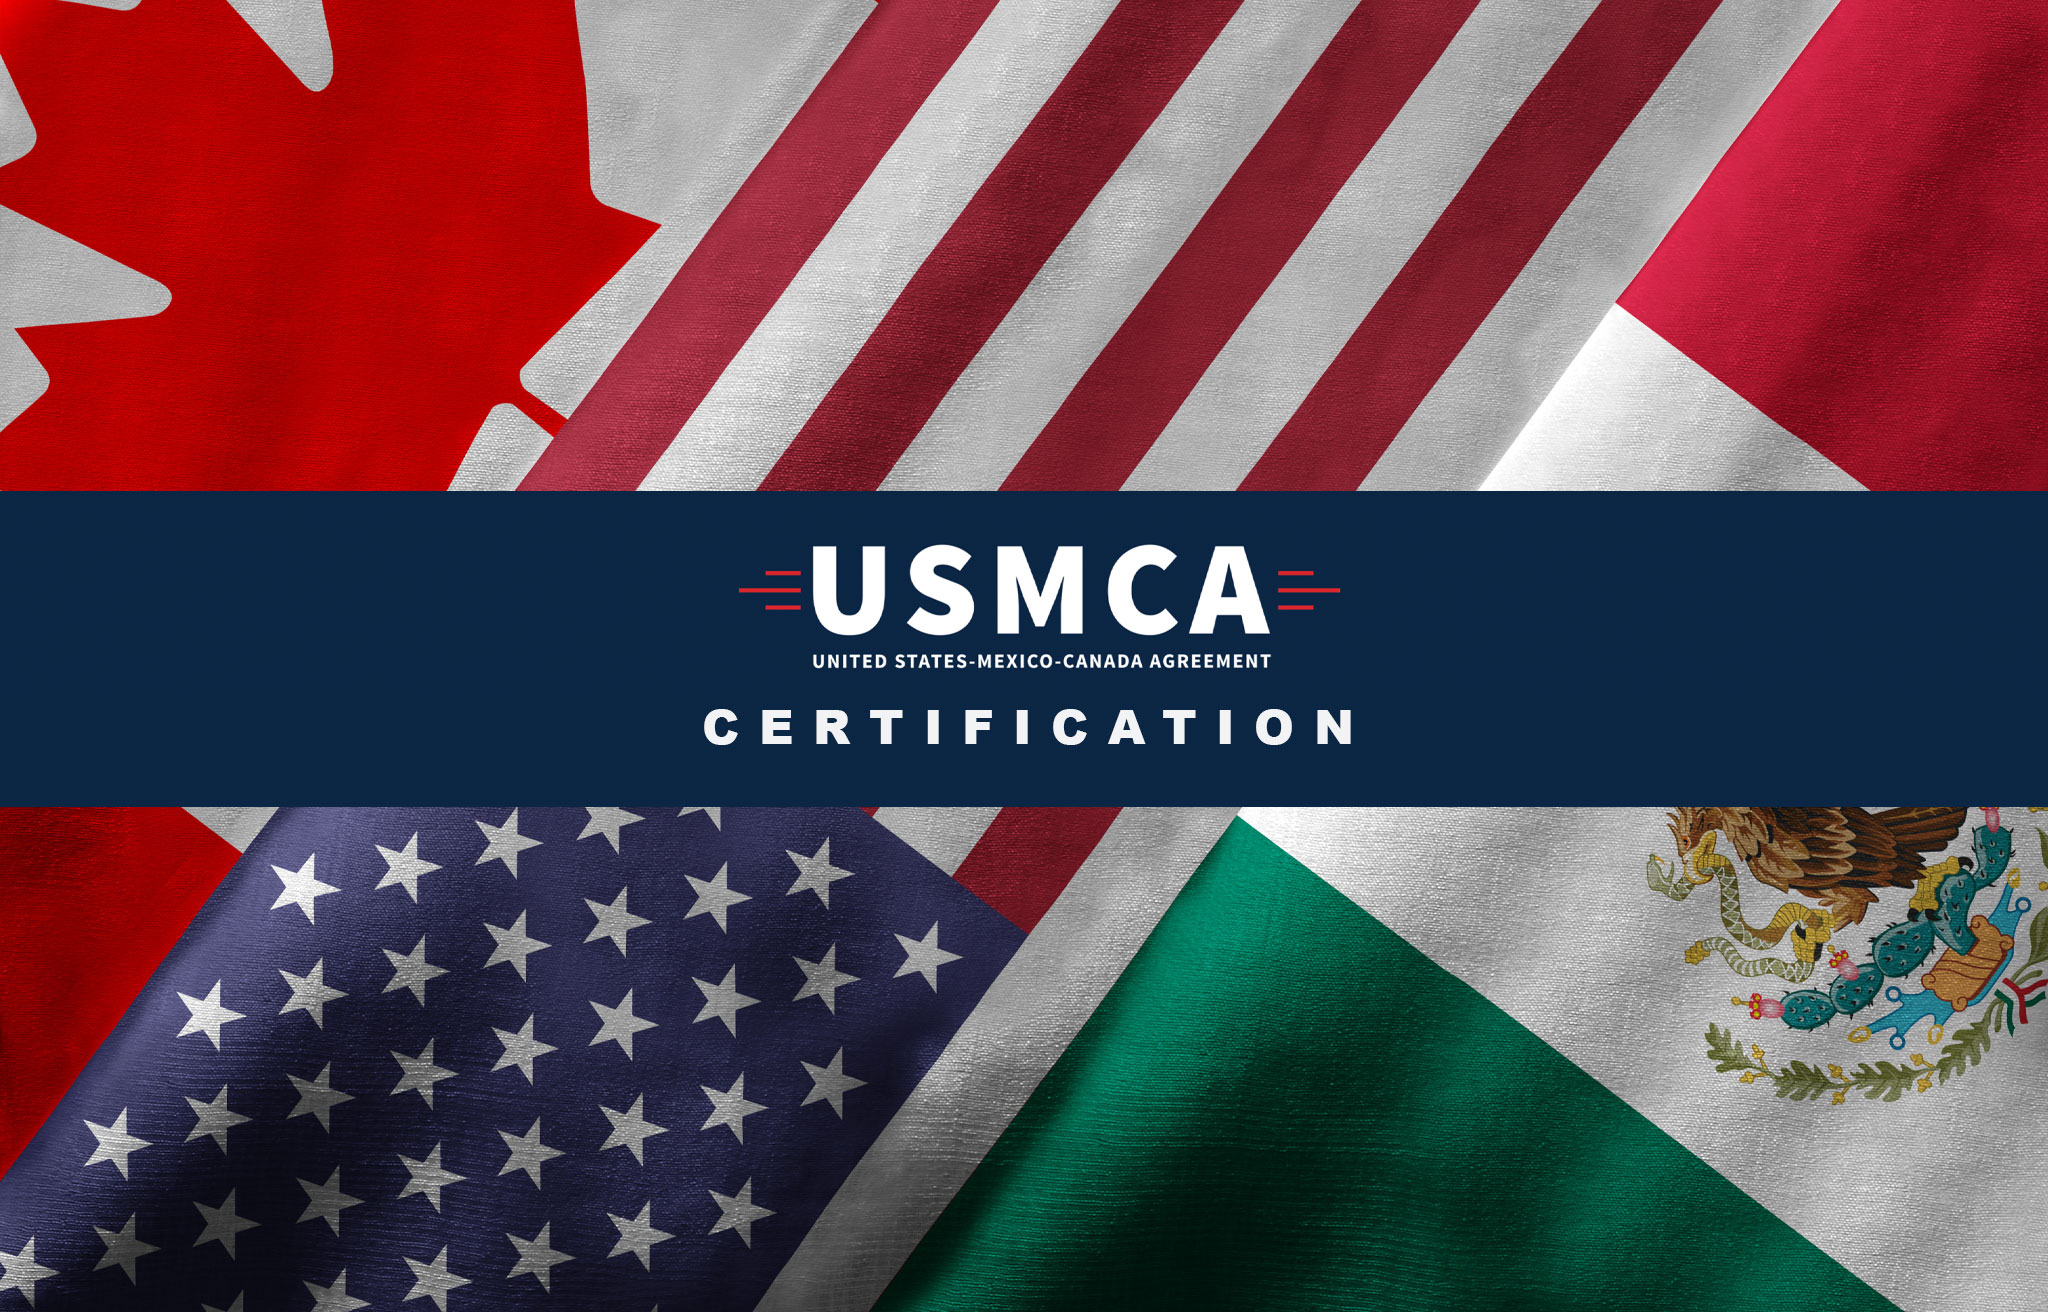 USMCA Certification Requirements and Sample Template